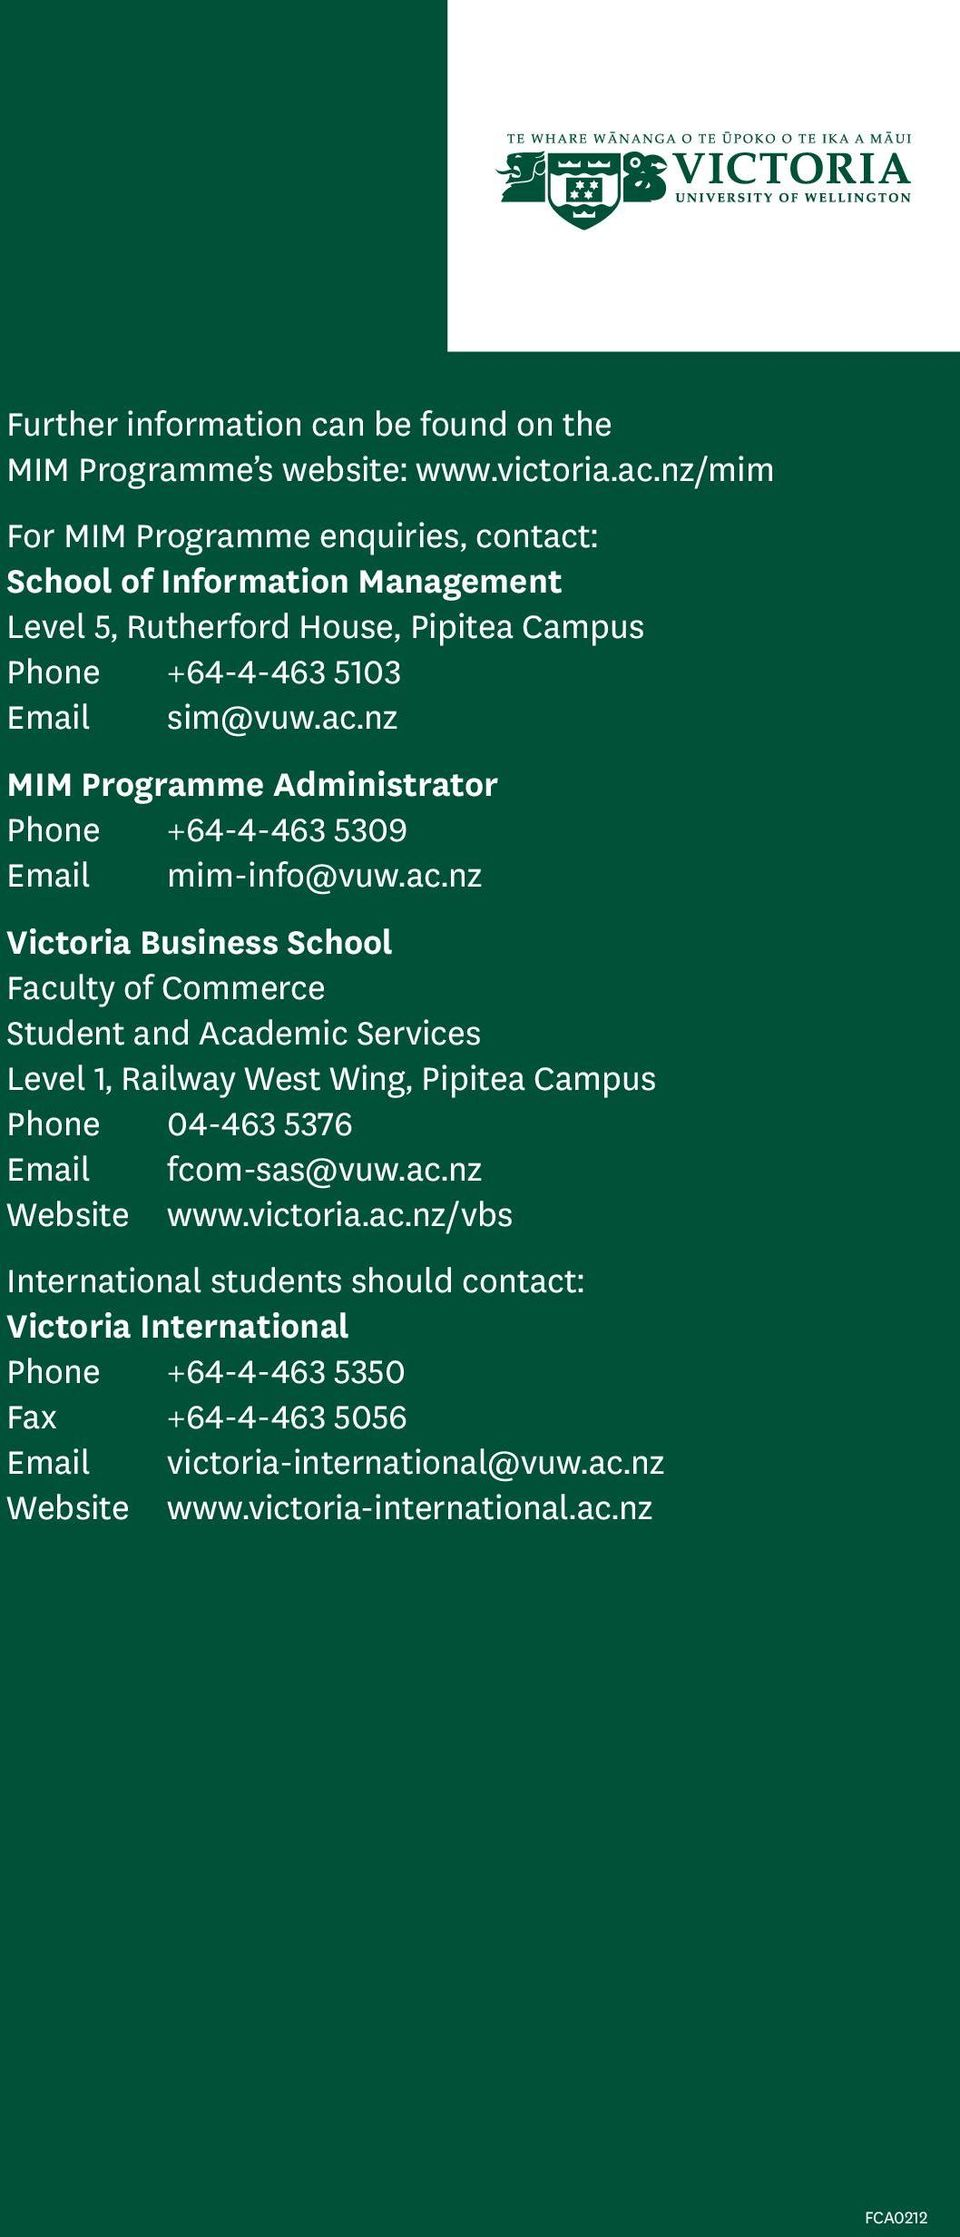 ac.nz Victoria Business School Faculty of Commerce Student and Academic Services Level 1, Railway West Wing, Pipitea Campus Phone 04-463 5376 Email fcom-sas@vuw.ac.nz Website www.